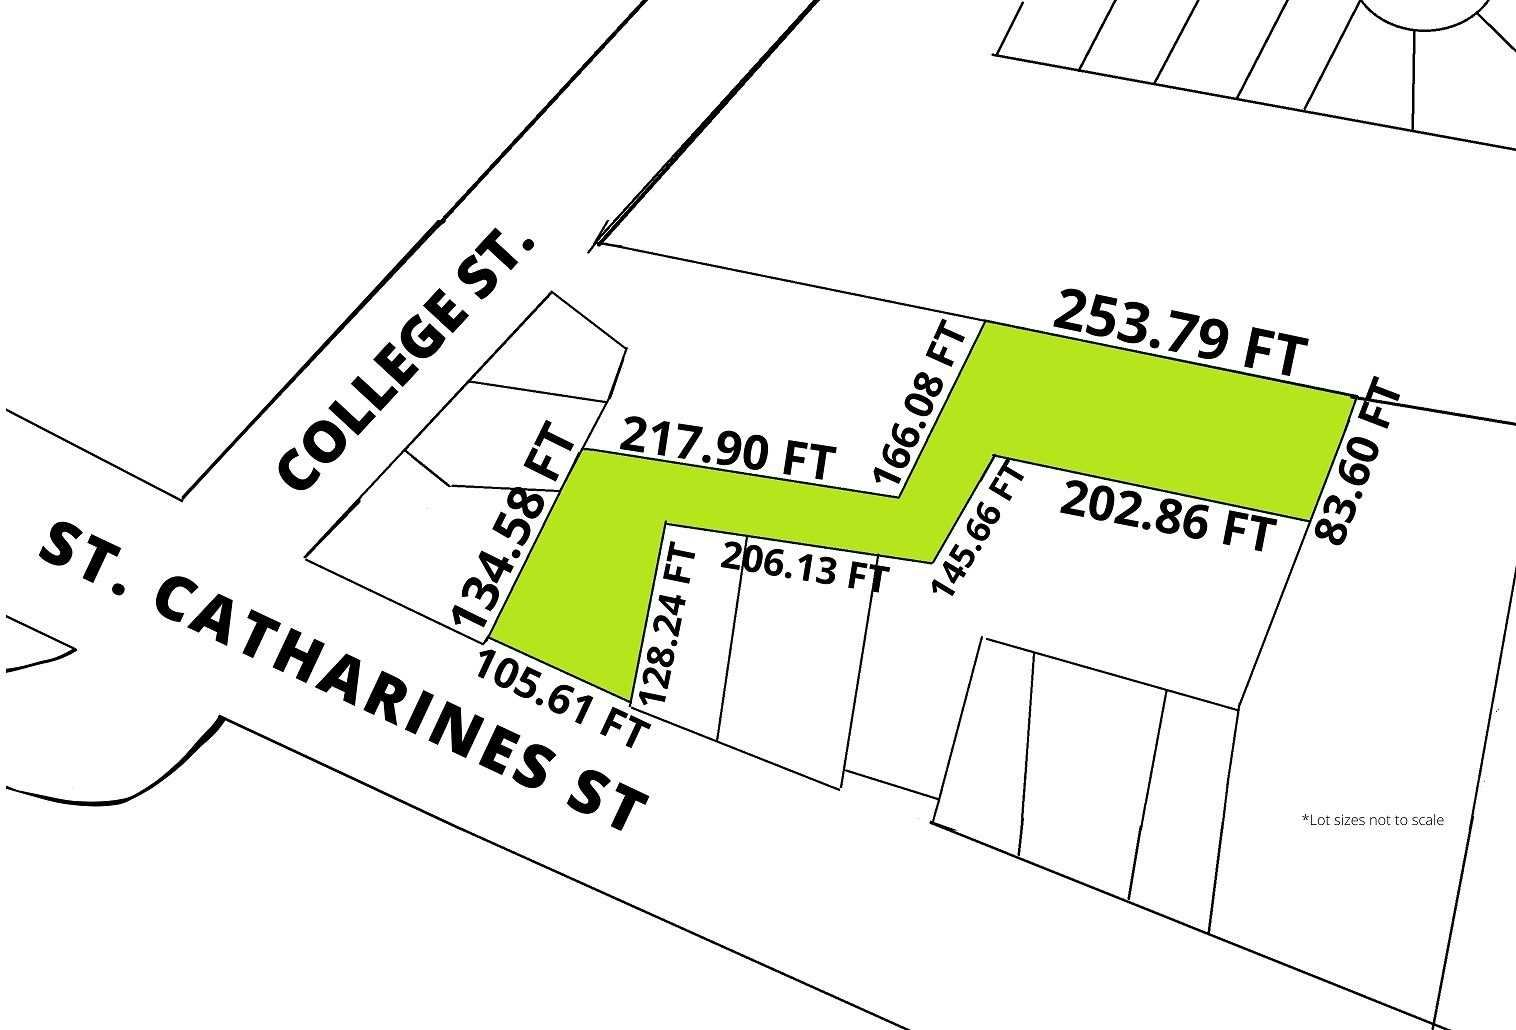 131 St. Catharines St, West Lincoln, ON L0R 2A0 - MLS#: X4952908